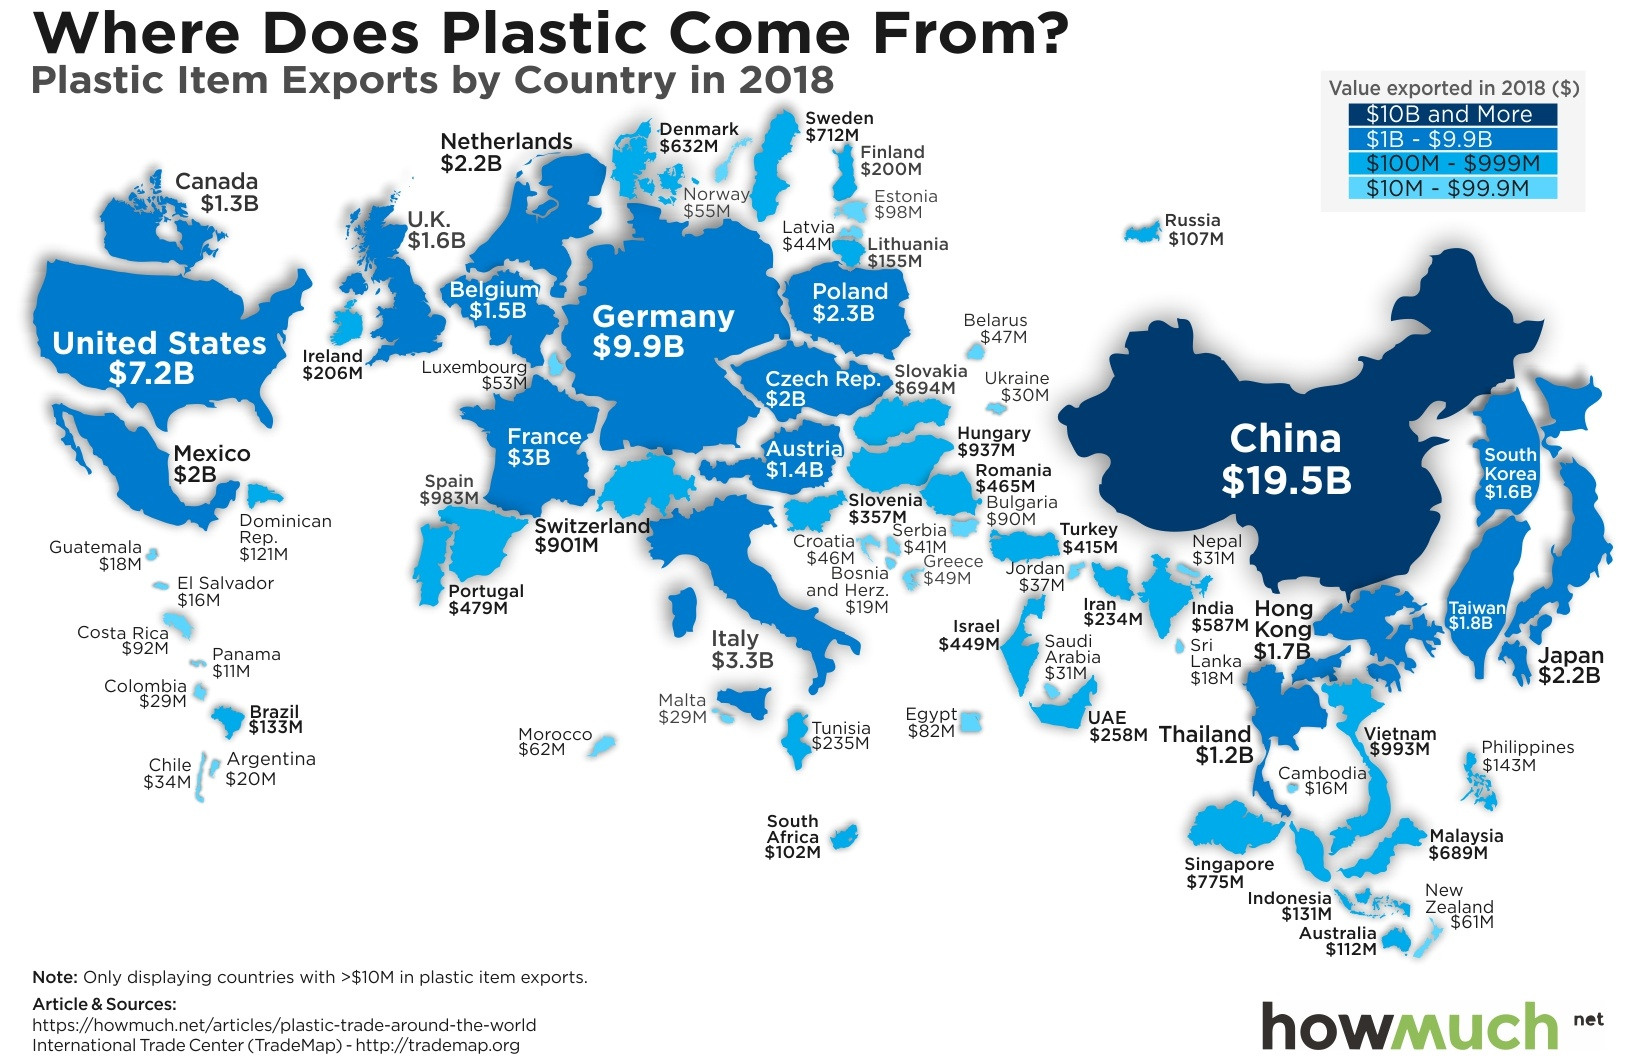 Where Does Plastic Come From?